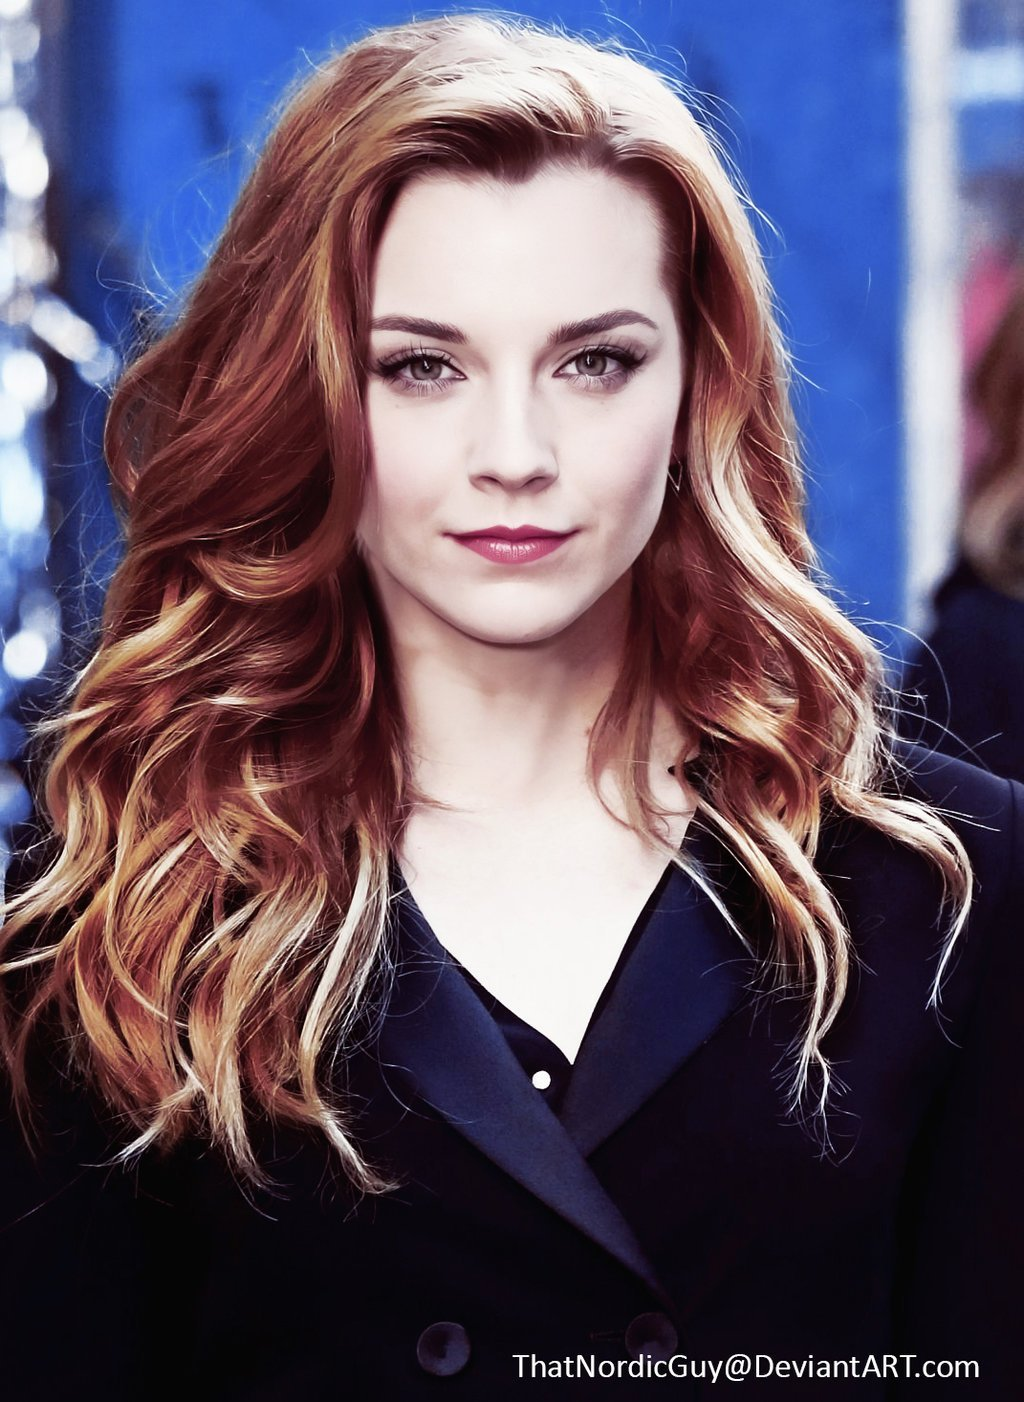 thatnordicguy-loves-to-meld-game-of-thrones-actress-natalie-dormer-who-plays-margaery-tyrell-in-the-series-and-actress-emma-watson-with-other-celebrities-here-theyre-morphed-together